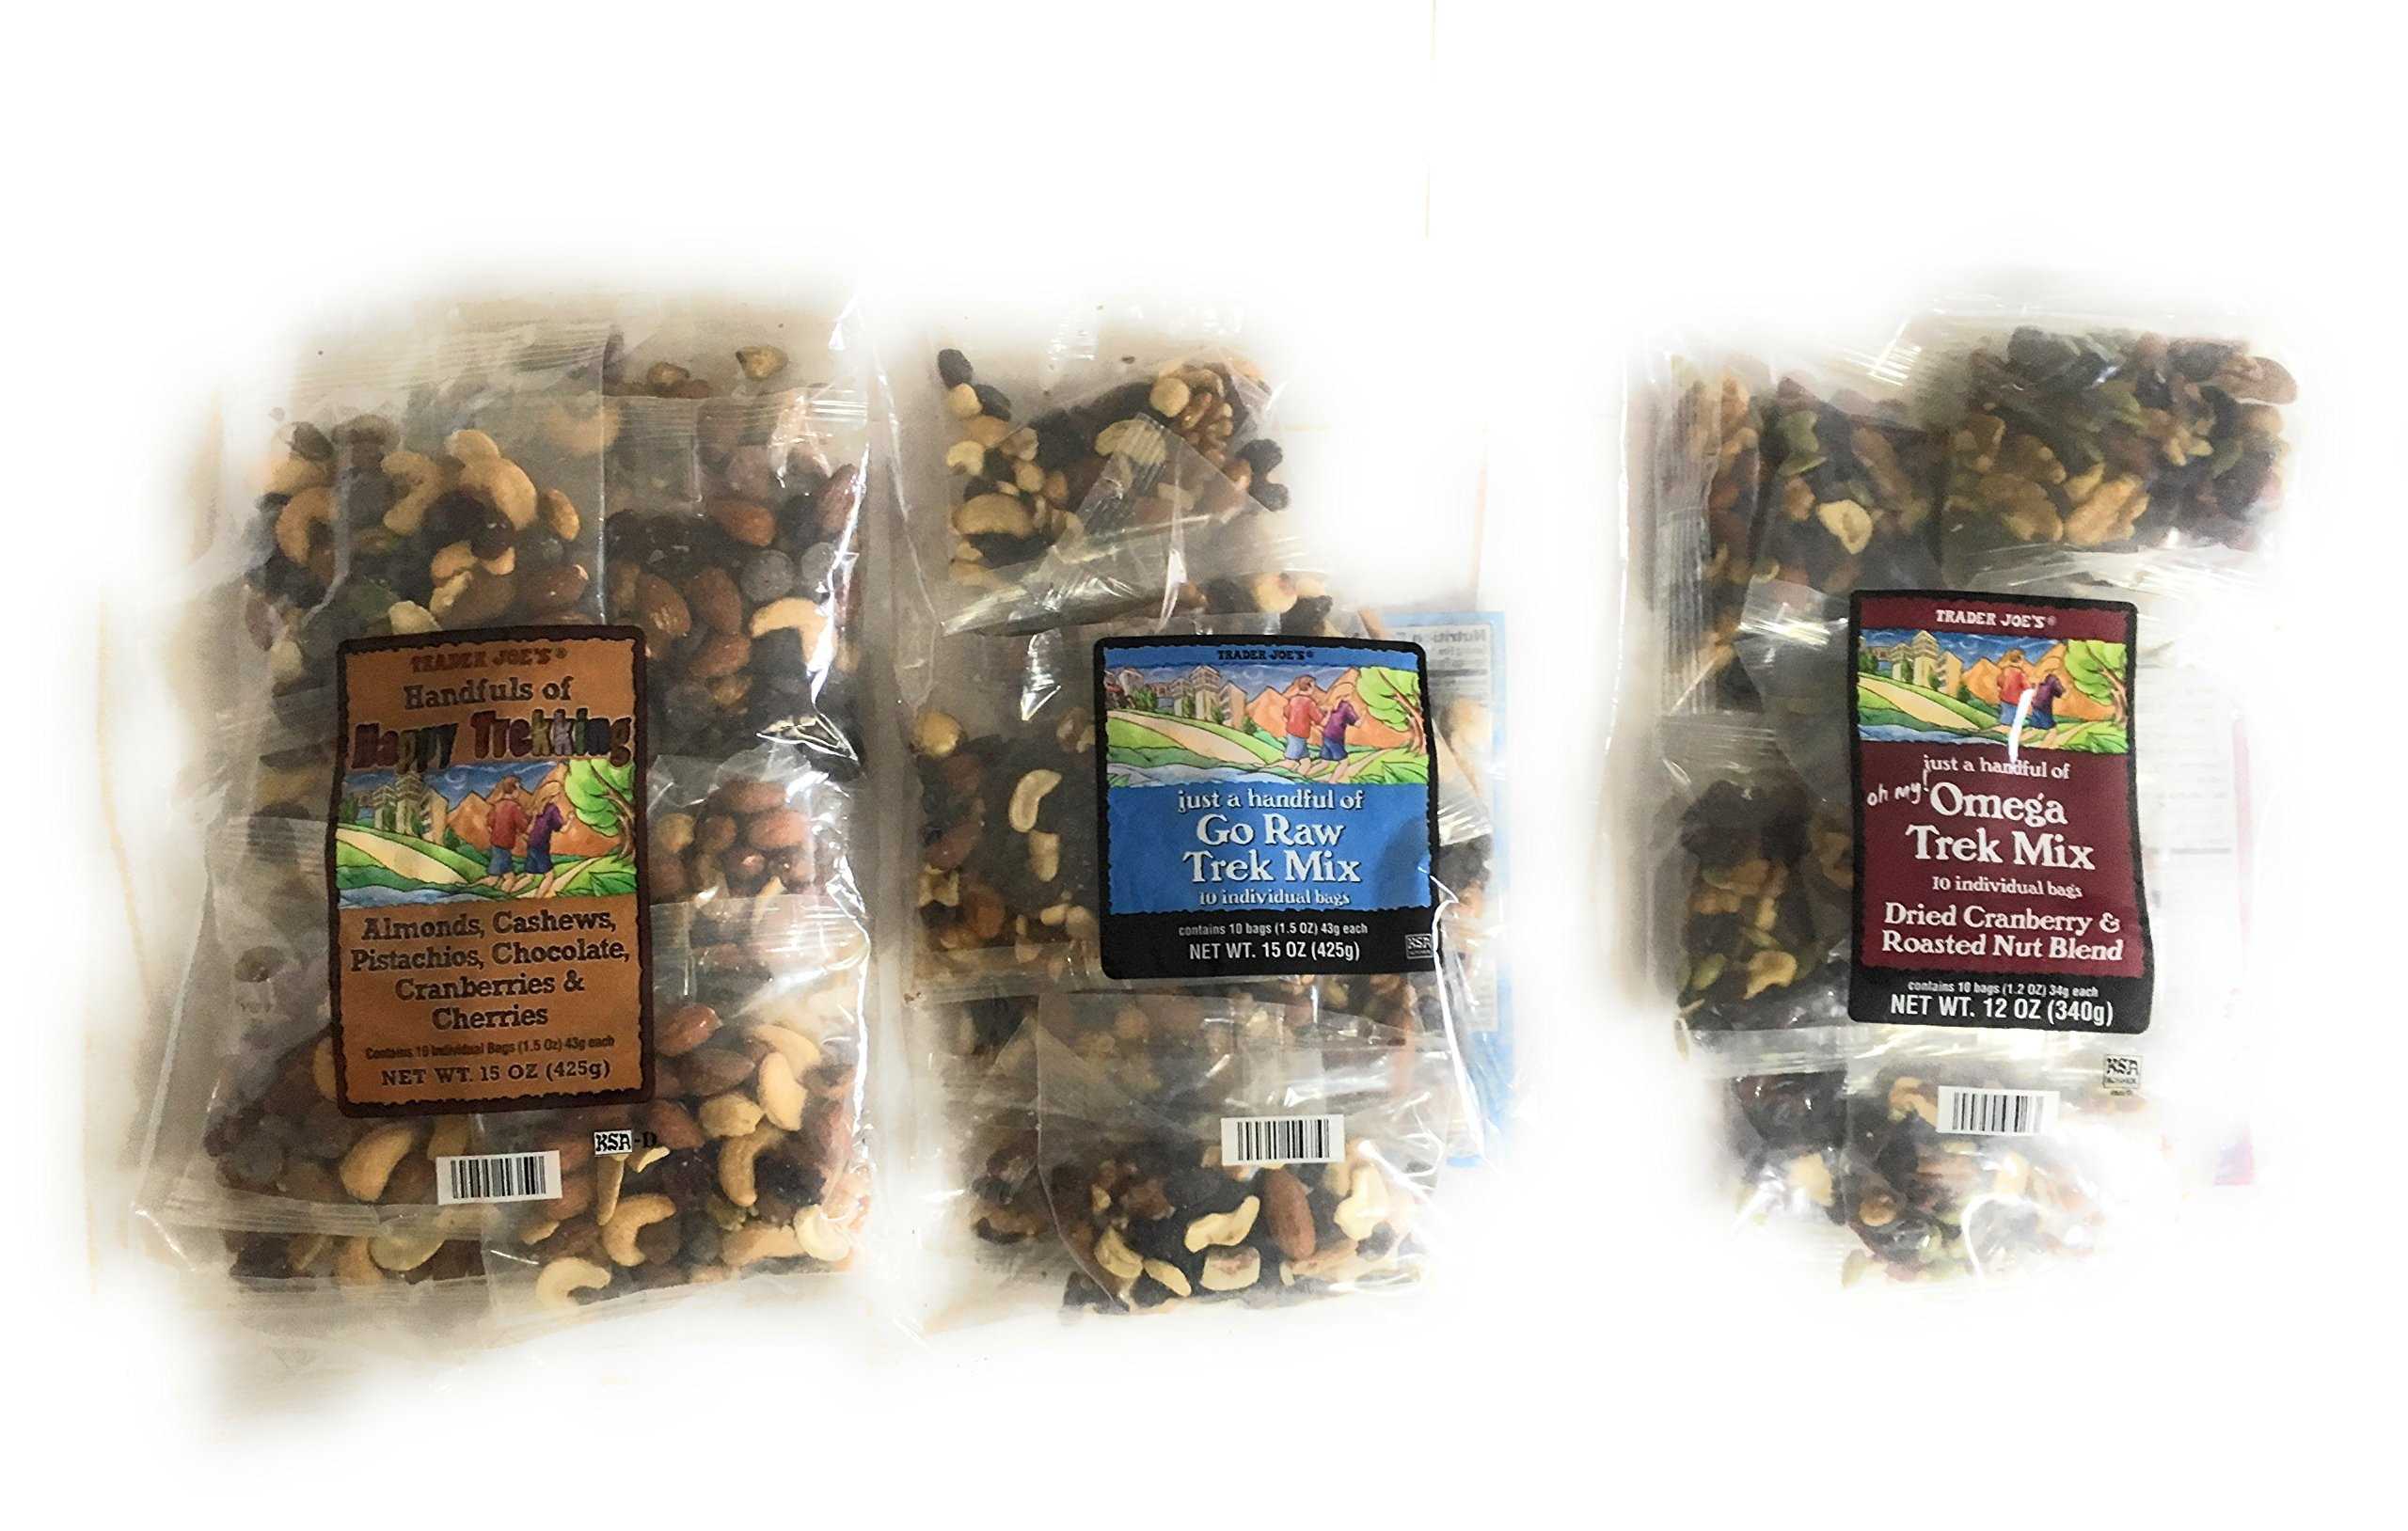 Trader Joes Trail Mix Snack Bundle - 1 Omega Trek, 1 Happy Trekking, and 1 Go Raw Pack - Each with Individual Mini Packets of Mixed Nuts - A Healthy Assortment for Adults and Kids by TJ's (Image #2)